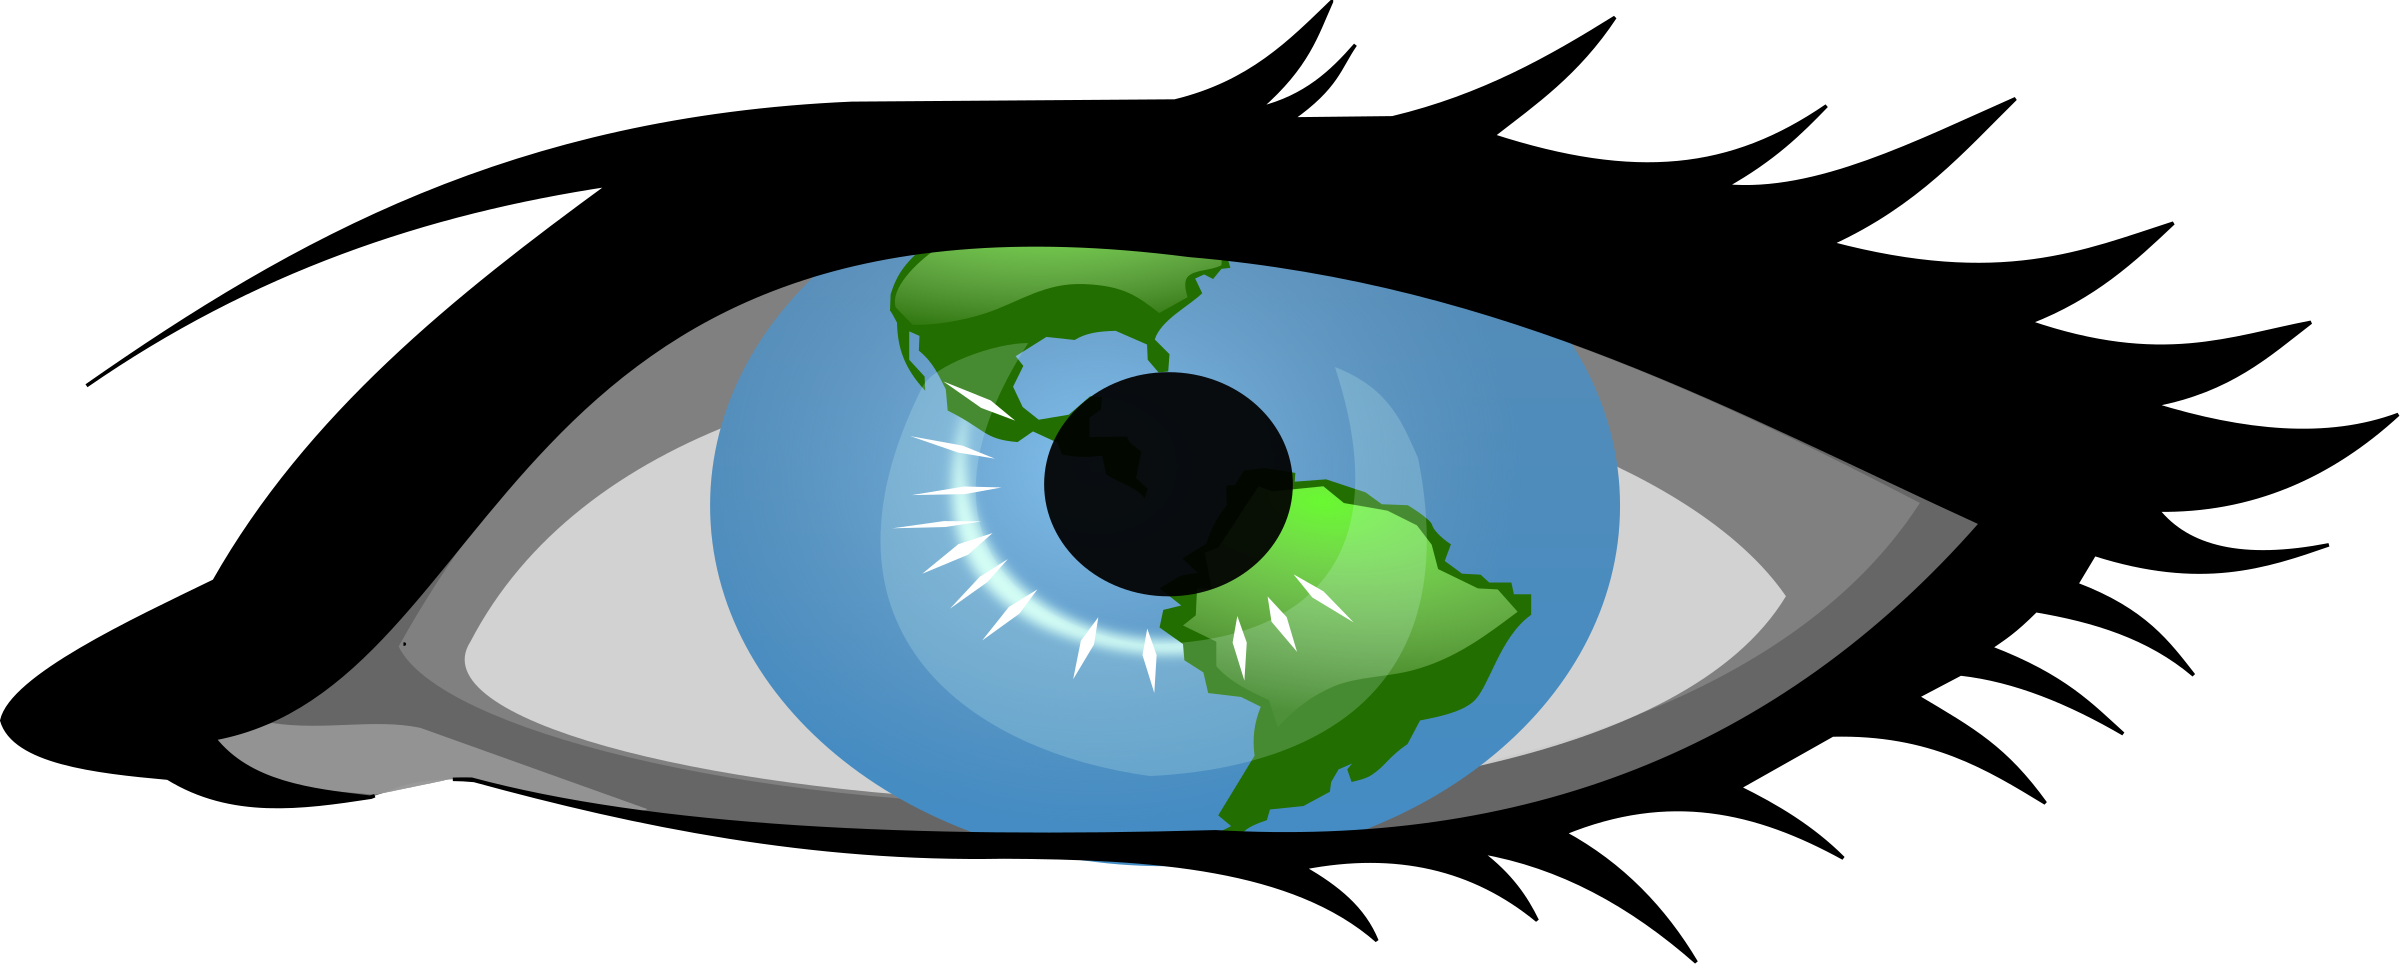 Earth eye free on. Peace clipart issue global